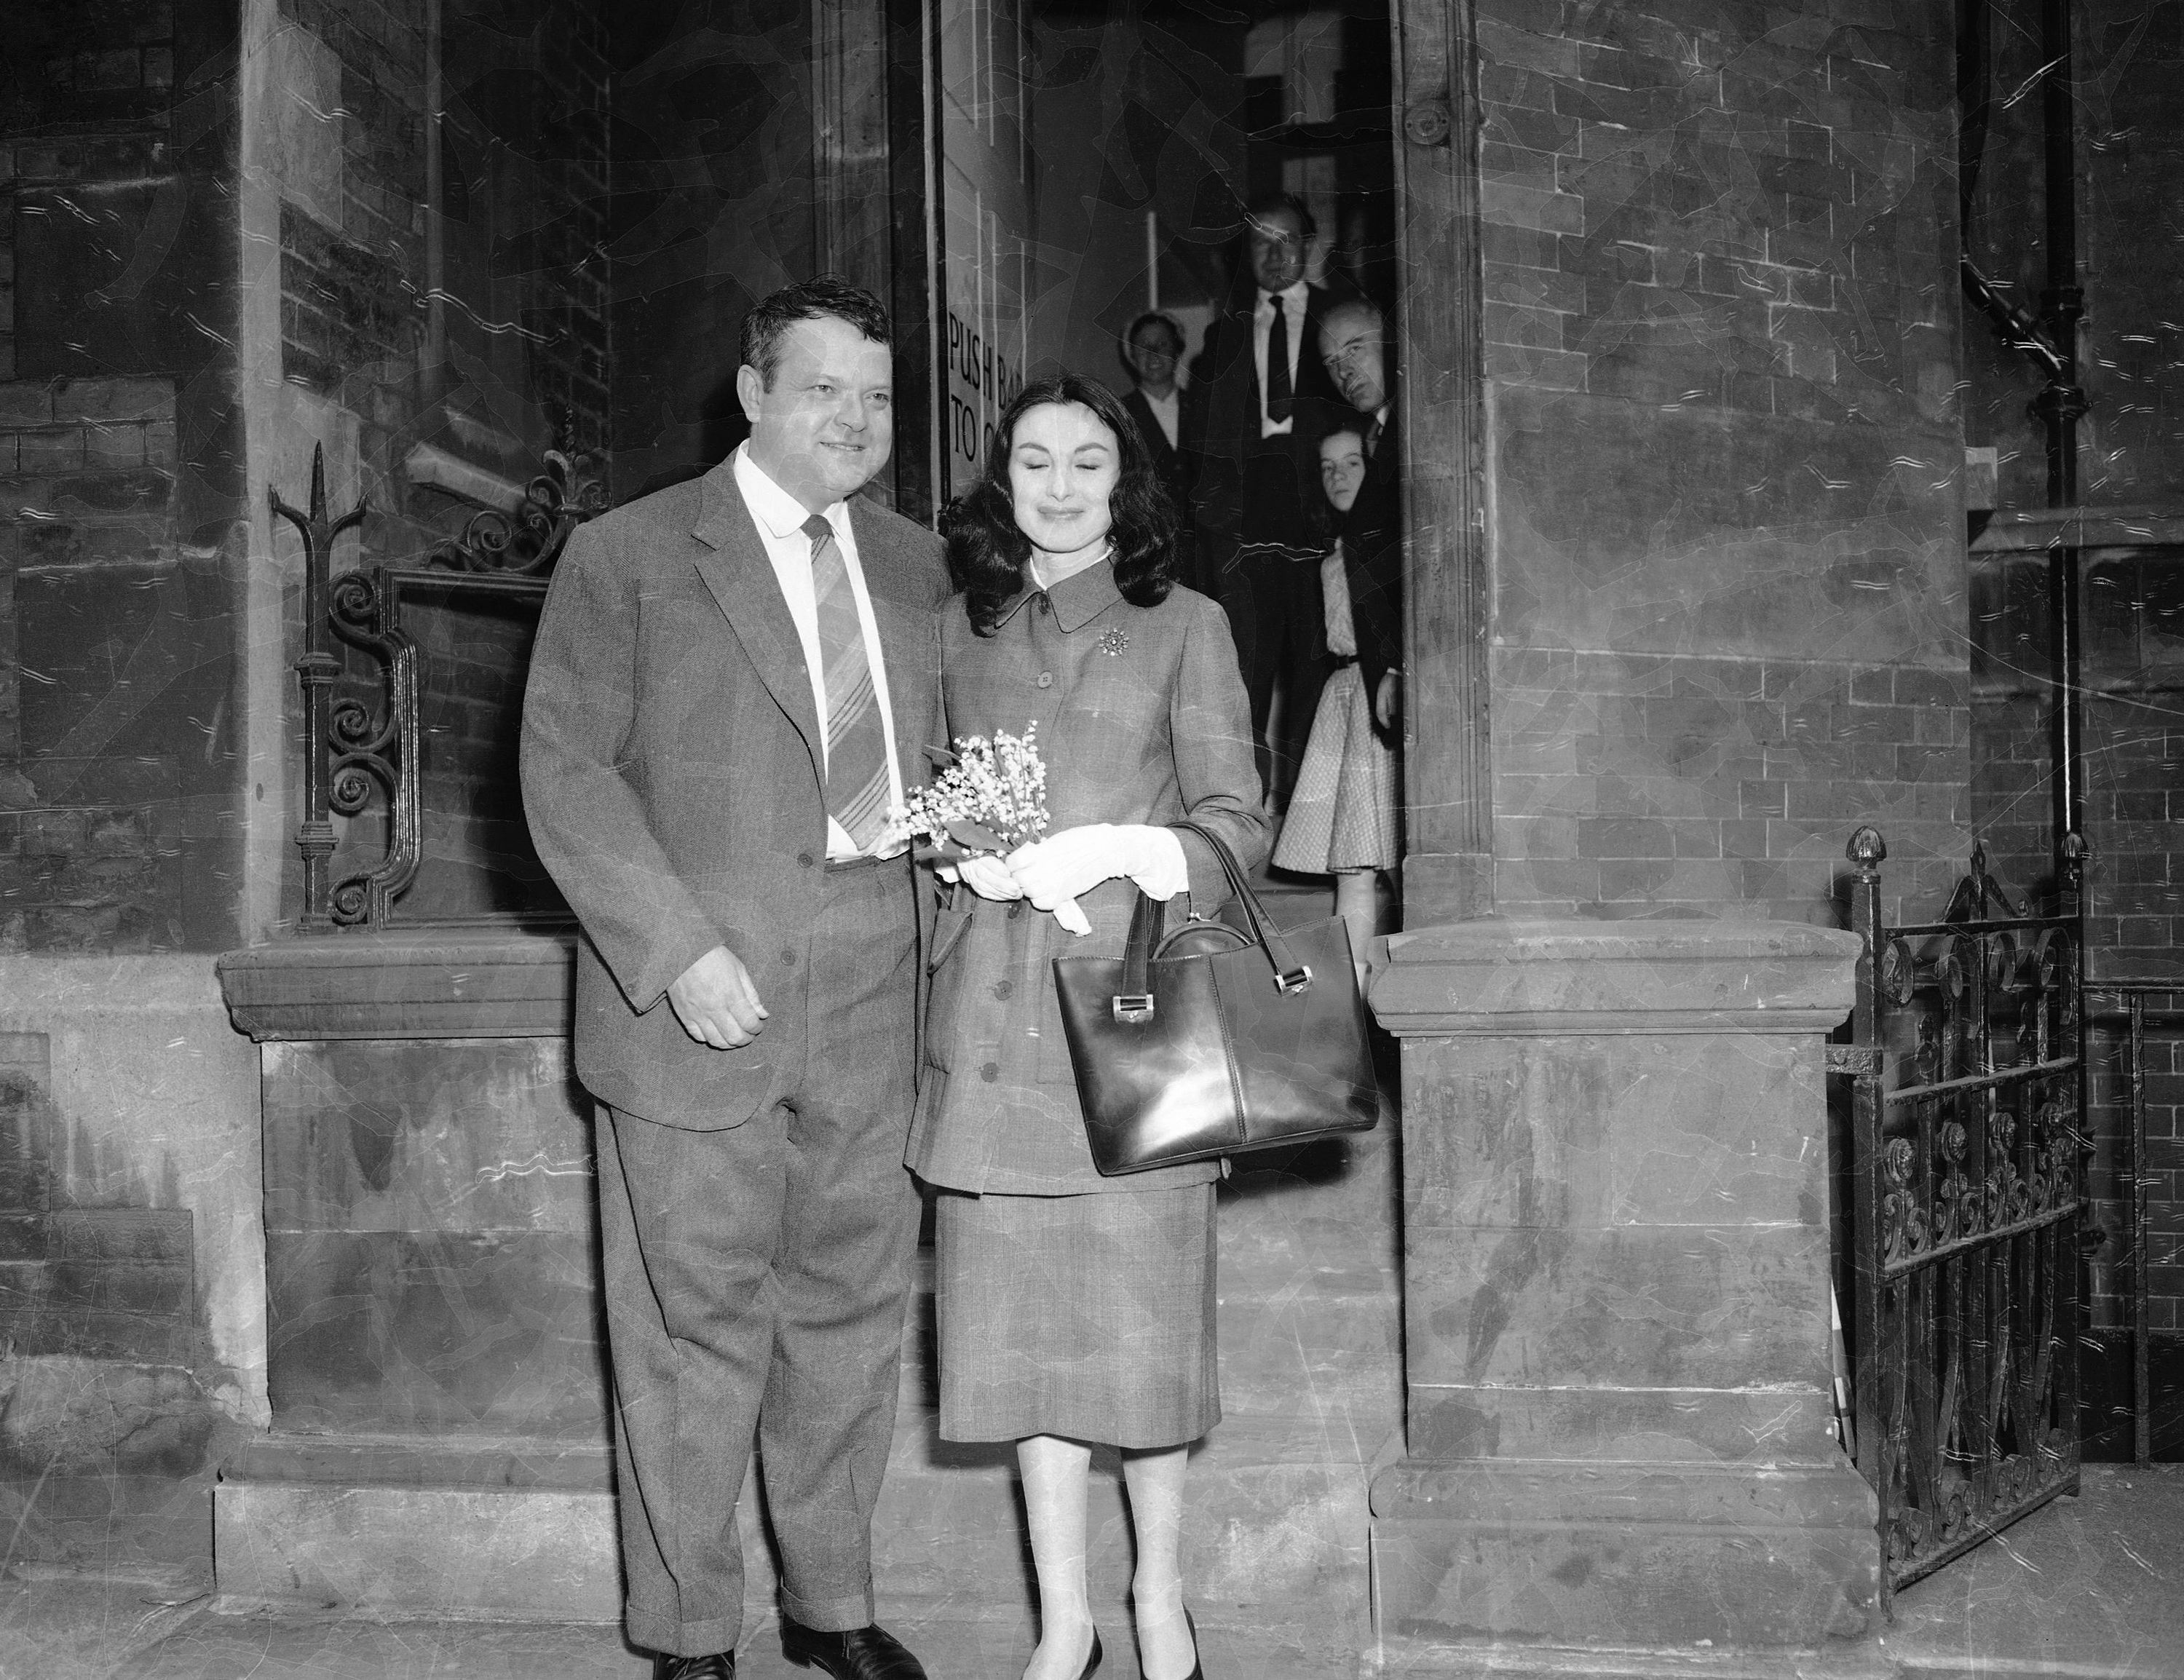 Orson Welles, former husband of Rita Hayworth, smiles happily as he poses with his Italian actress bride Paoula Mori, 24, outside London's Caxton Hall register office after their marriages, May 8, 1955. They first met in Rome three years ago. Welles proposed in Spain. The bride is an Italian countess. She does not use her title. (AP Photo)